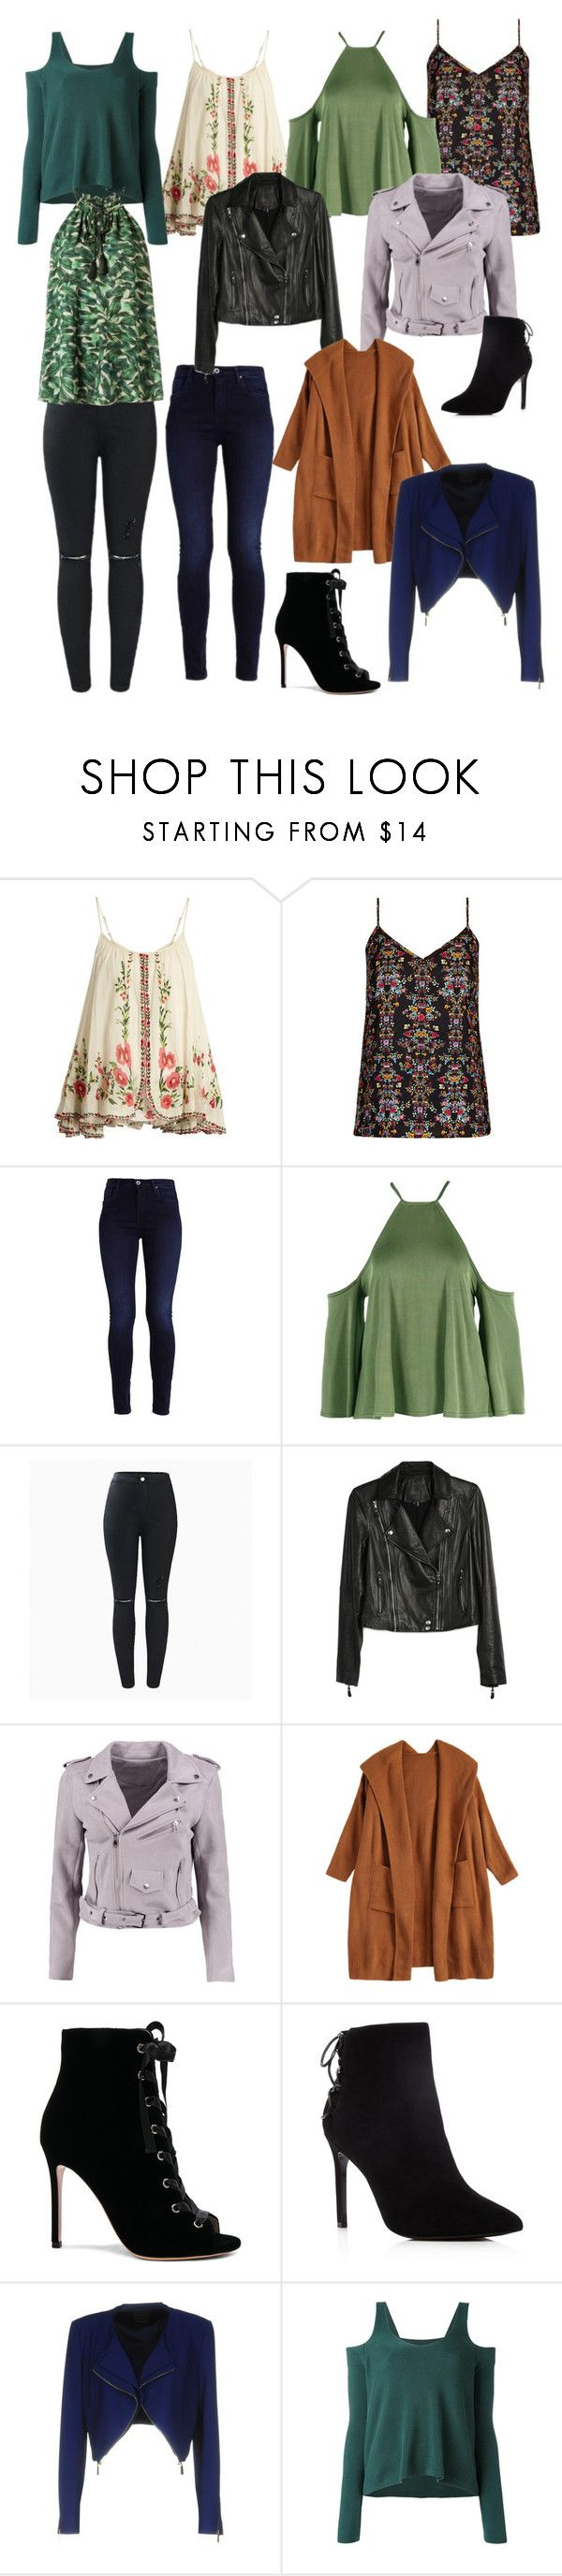 """""""Natalie P"""" by lilynnguyen on Polyvore featuring Mes Demoiselles..., City Chic, Boohoo, Paige Denim, Gianvito Rossi, Charles David, Pinko, MM6 Maison Margiela, Andrea Marques and plus size clothing"""